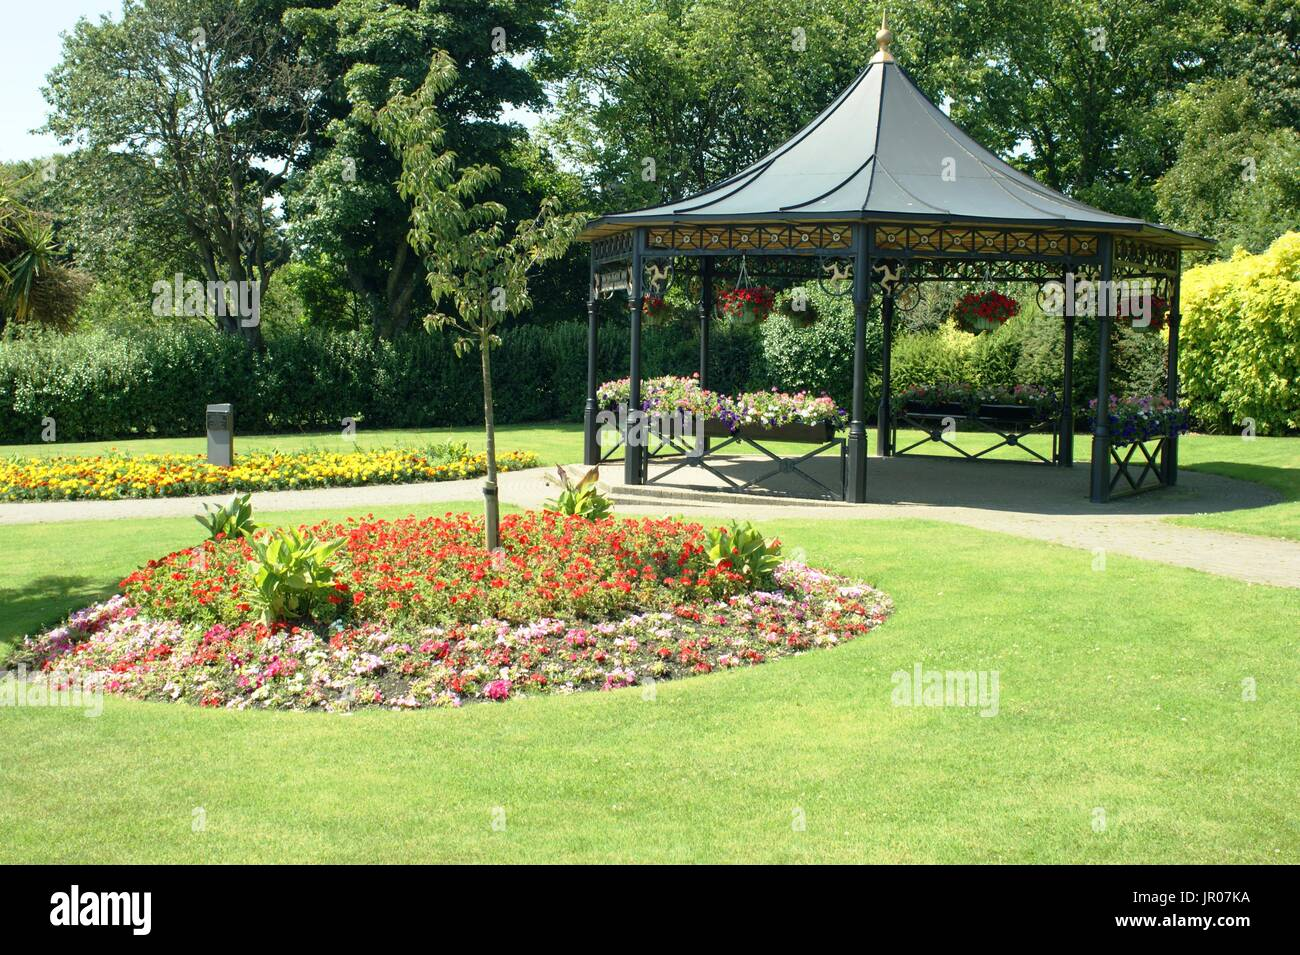 The Bandstand at Nobles Park, Douglas Isle of Man - Stock Image